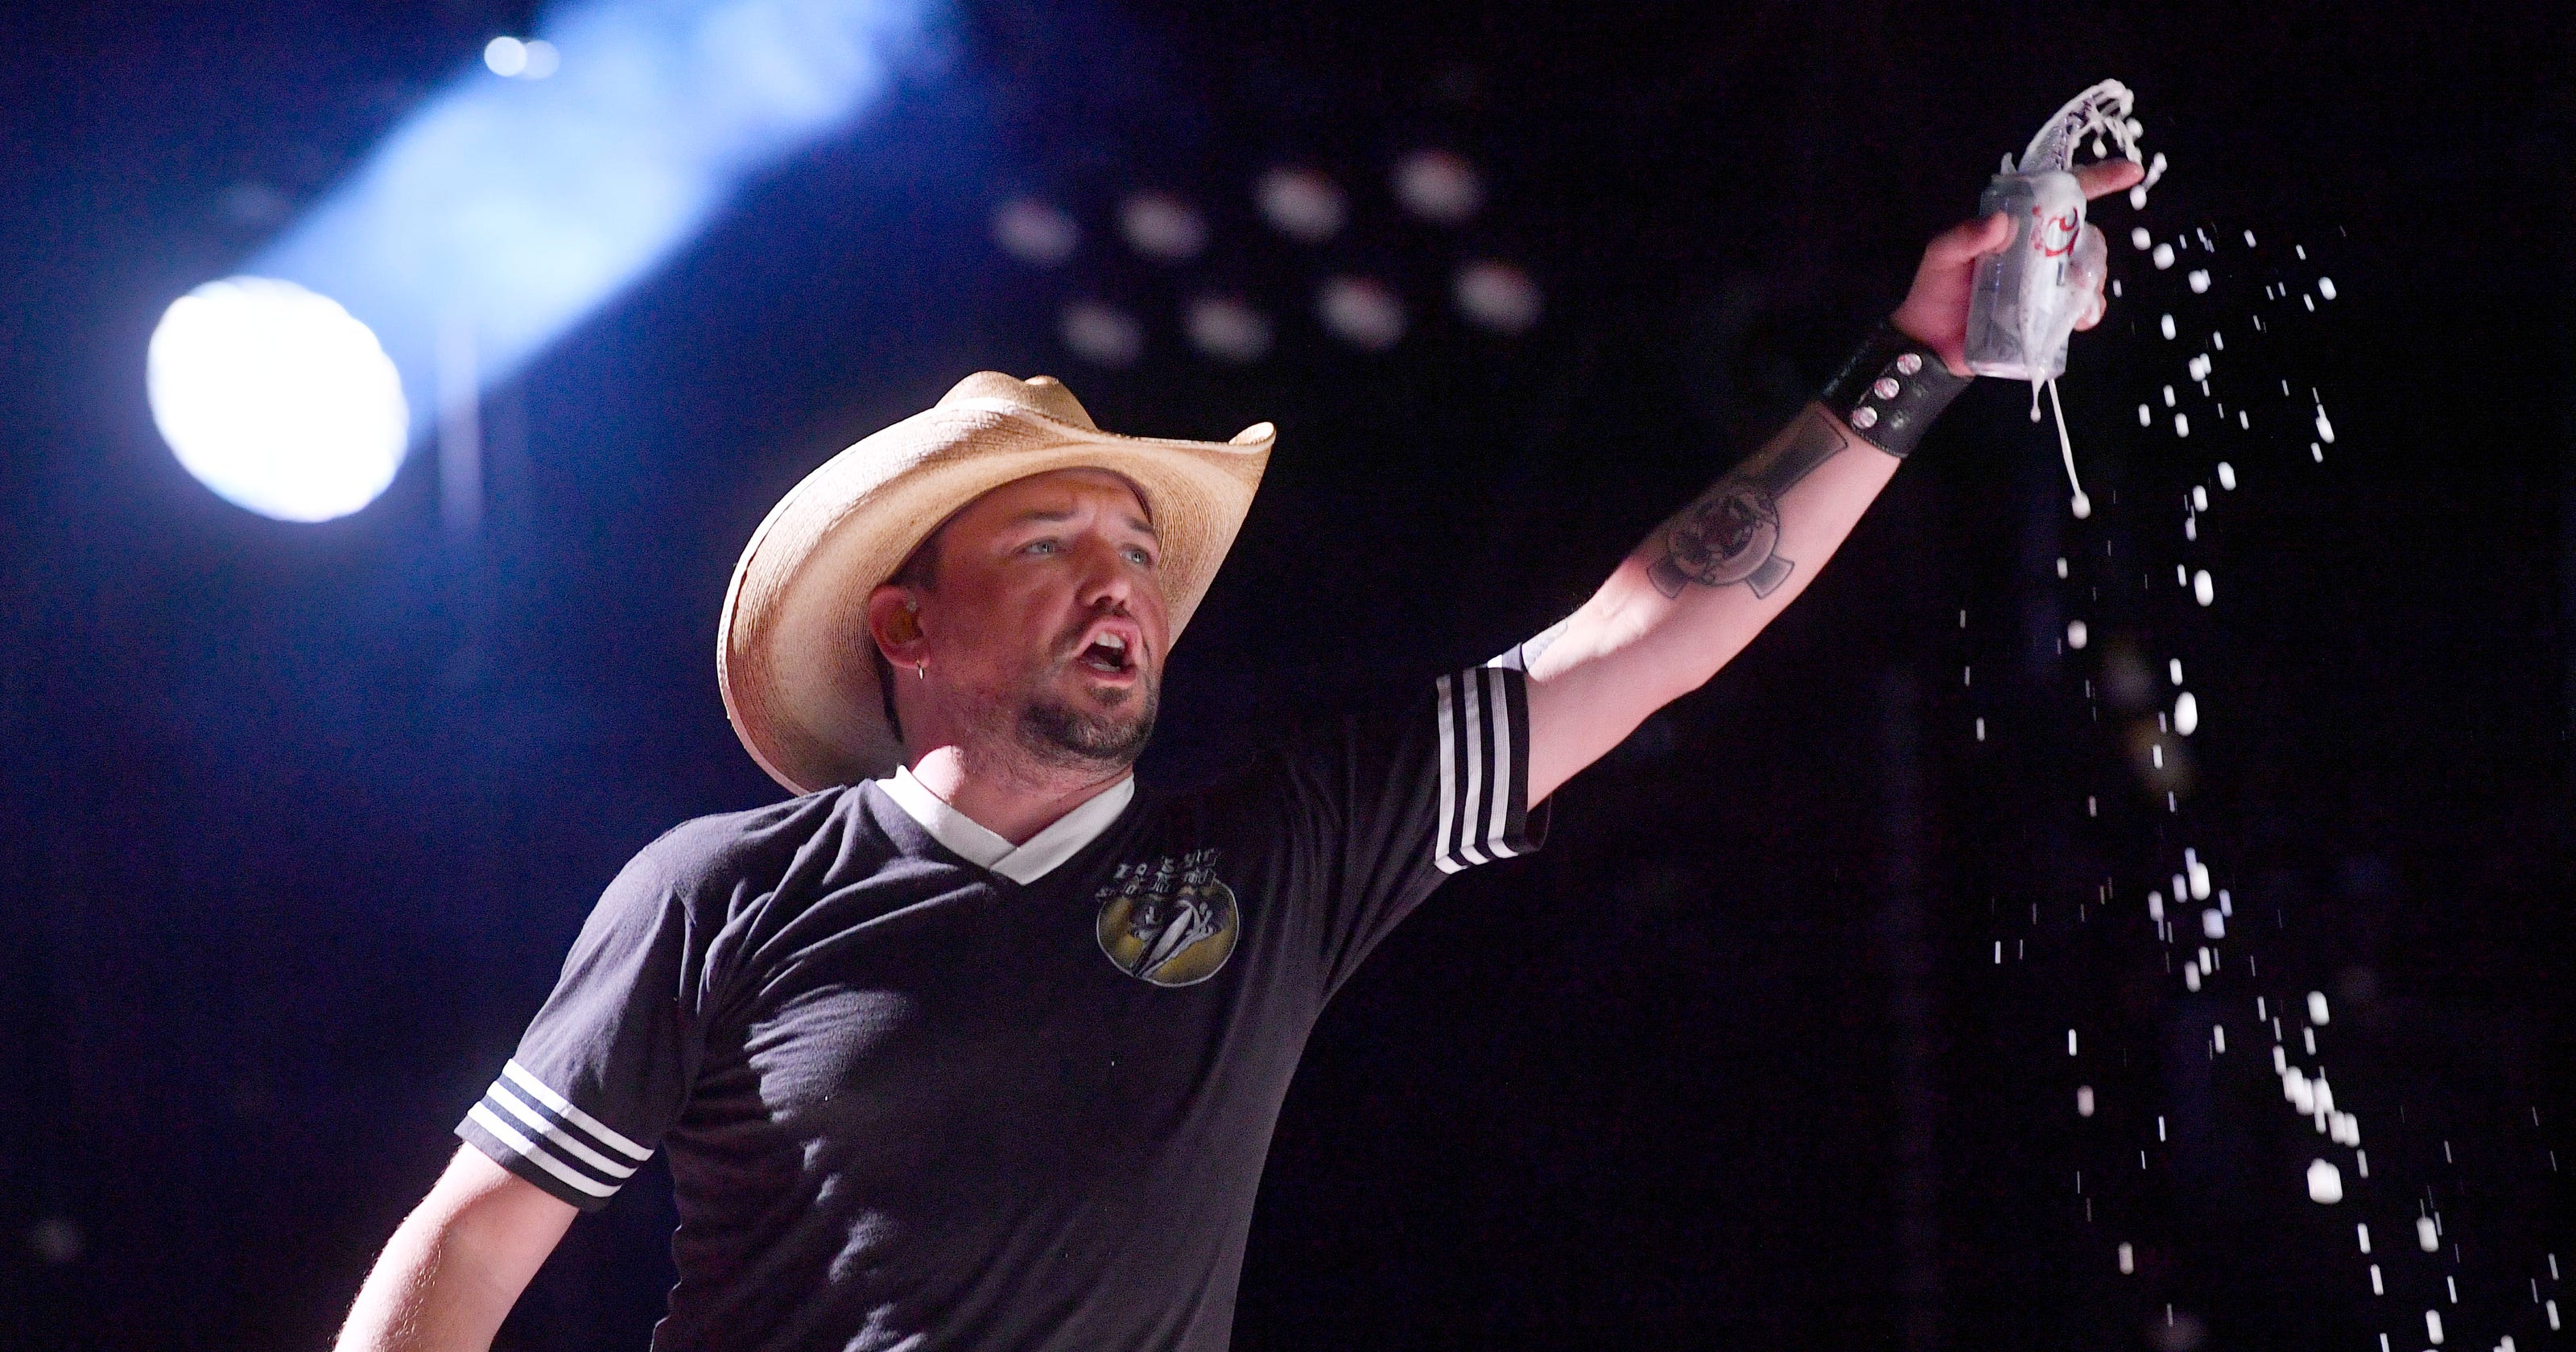 Country USA: Look who is playing in Oshkosh this week